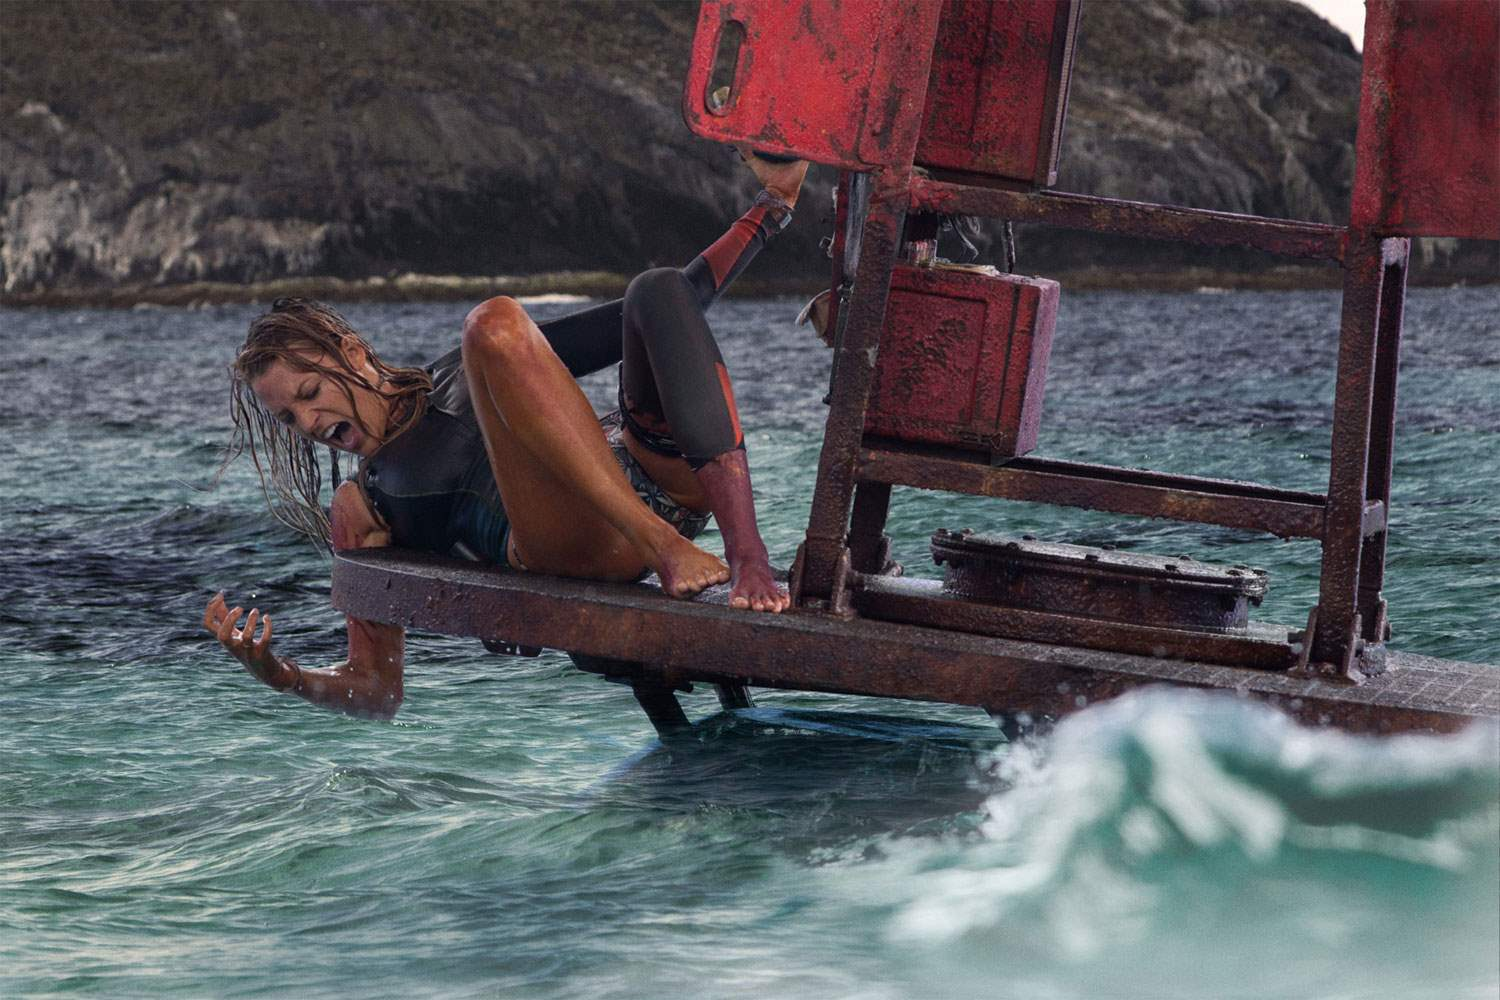 Blake Lively in The Shallows horror buoy